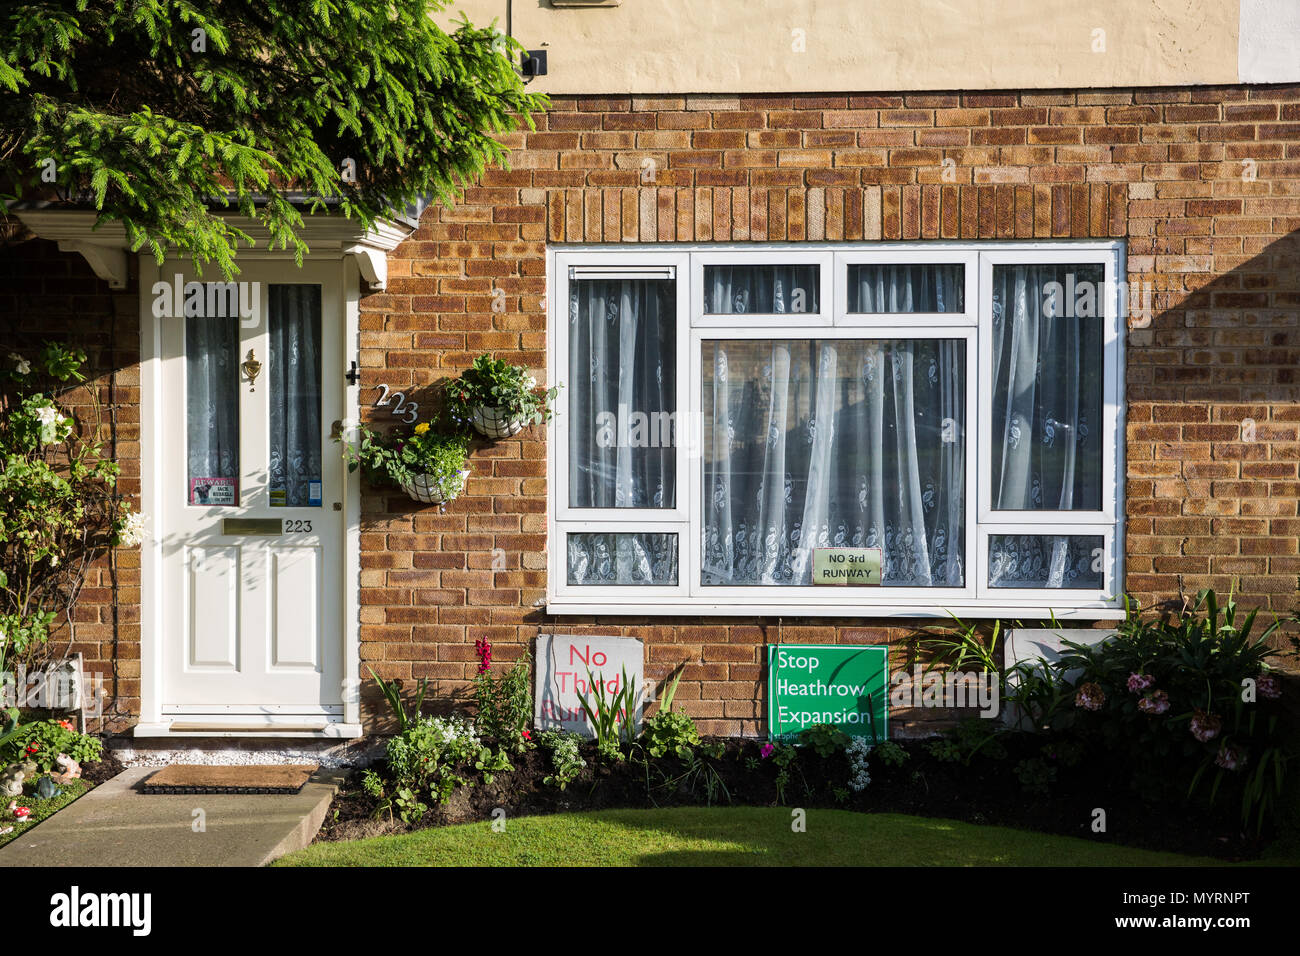 Sipson, UK. 5th June, 2018. Signs calling for no third runway at Heathrow airport inside and outside a house in Sipson. - Stock Image